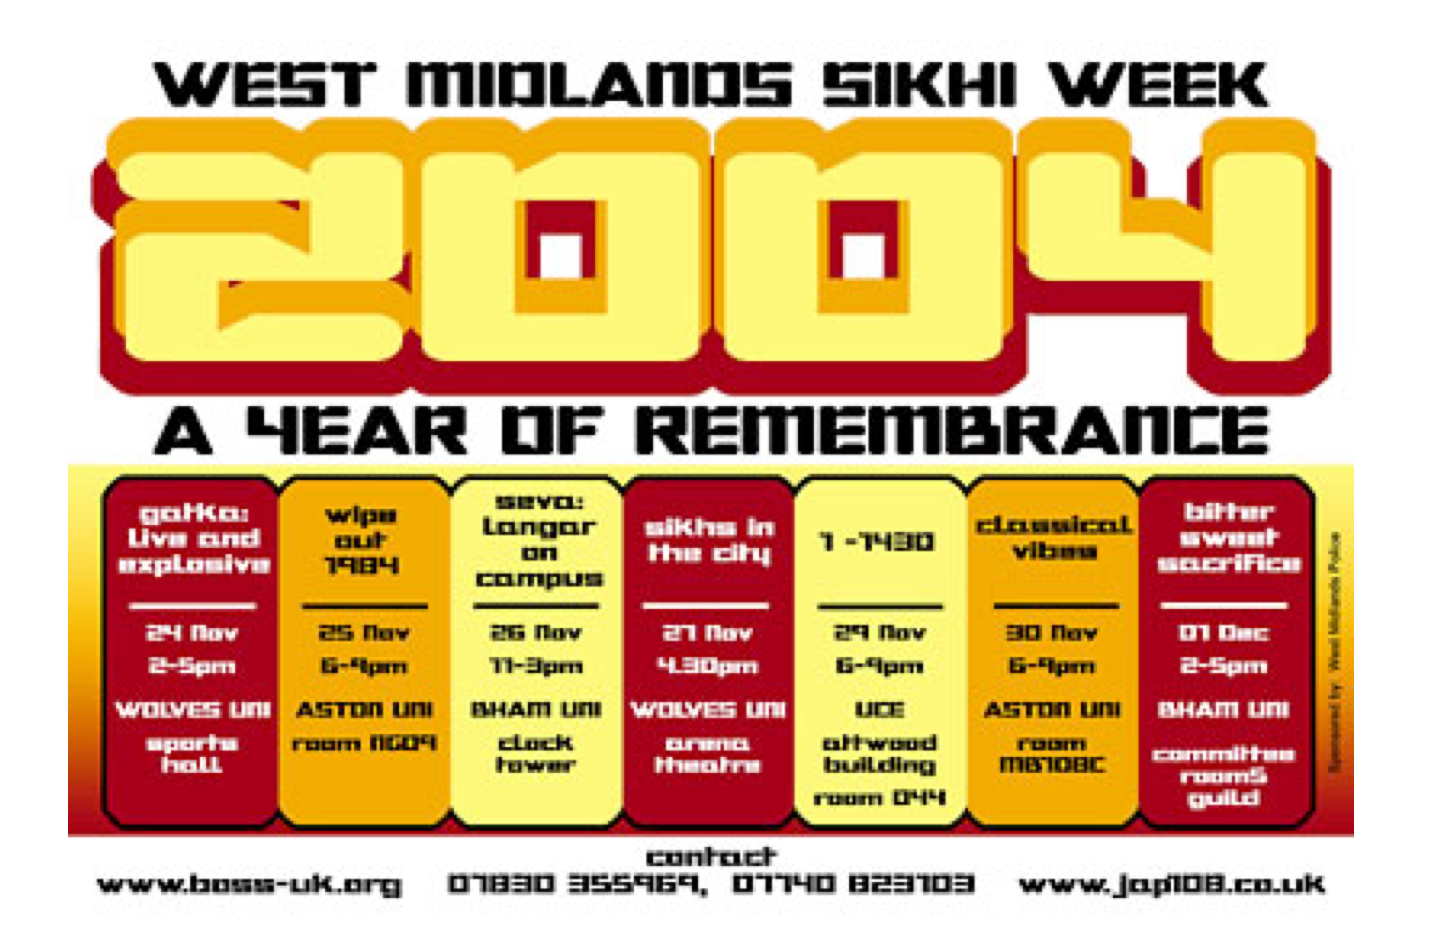 The first Langar on Campus was a part of the ambitious West Mildands Sikhi Week that took place in November 2004